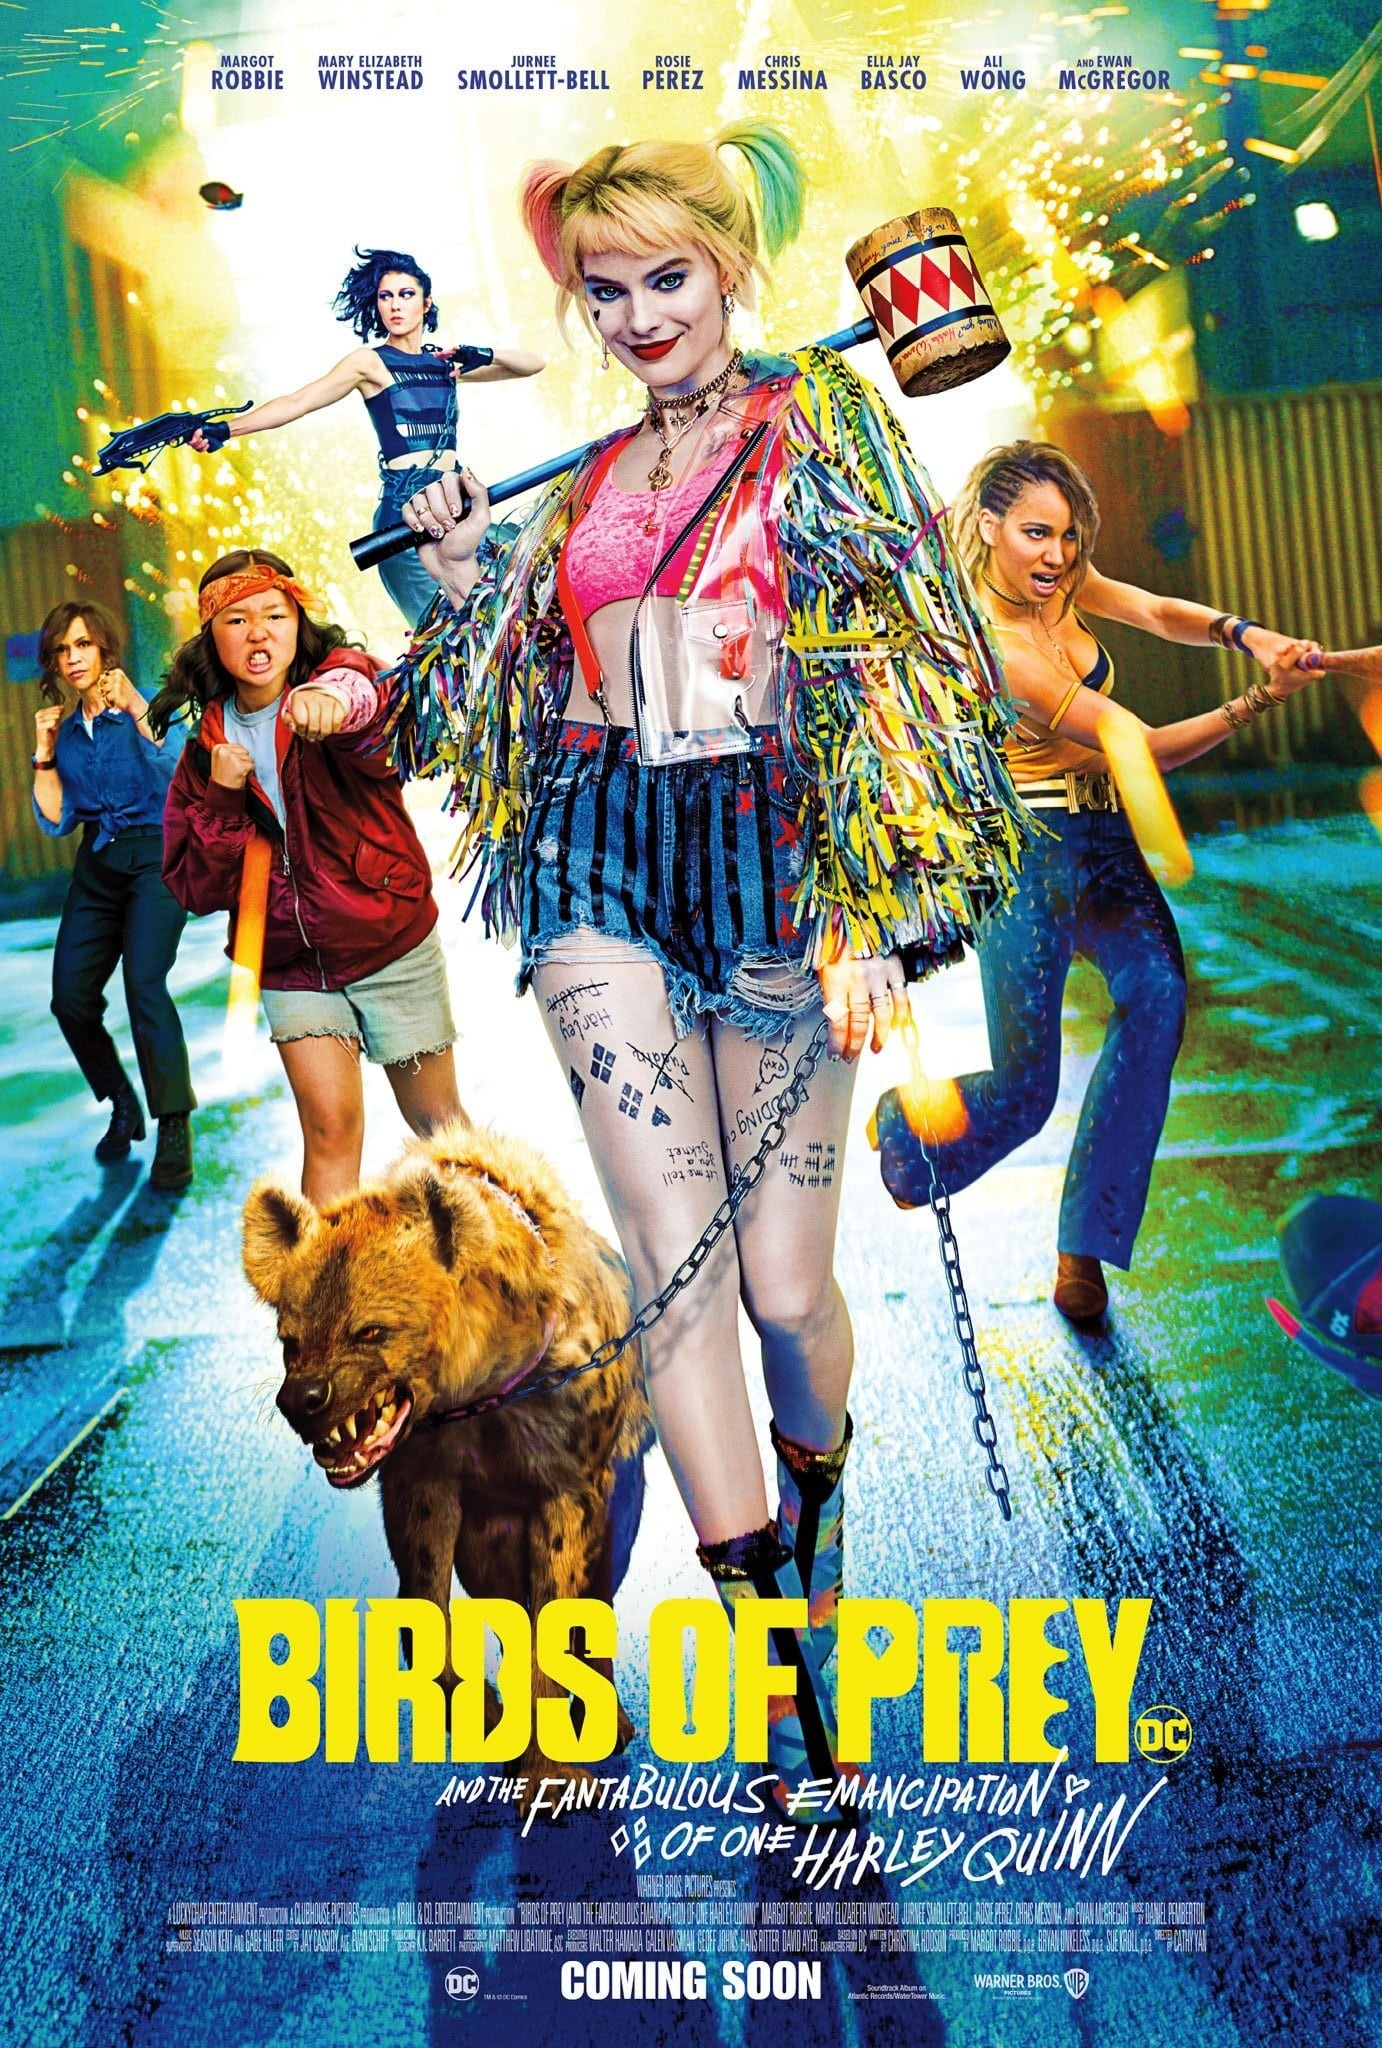 Mega Sized Movie Poster Image for Birds of Prey (And the Fantabulous Emancipation of One Harley Quinn) (#15 of 18)